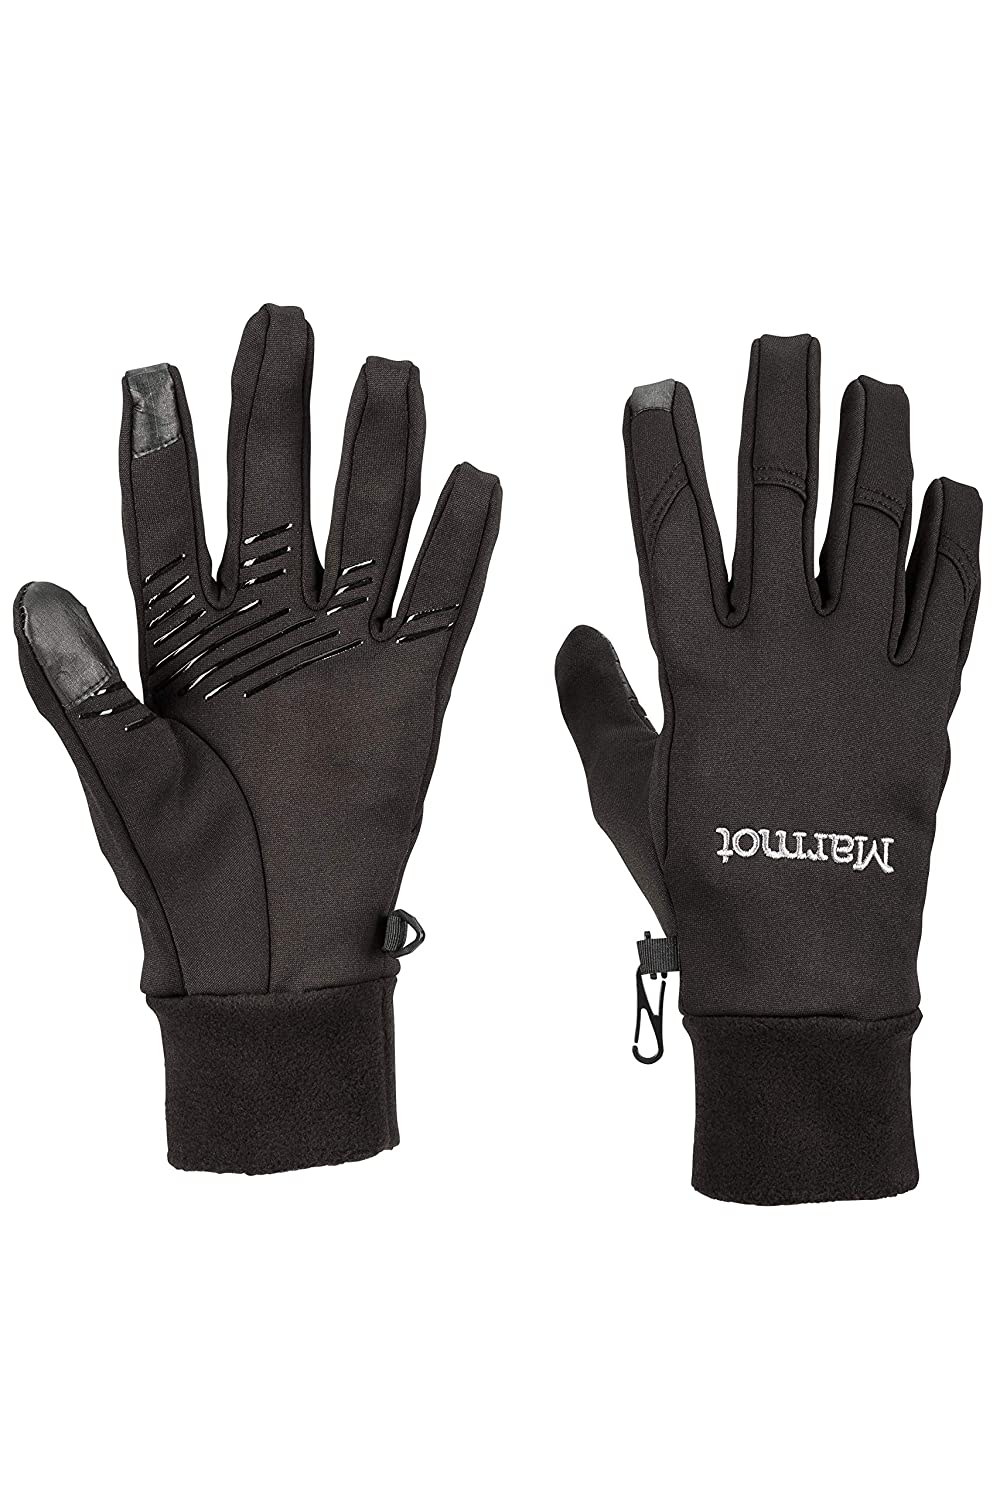 19930-001 MEN CONNECT GLOVE MARMOT BLK